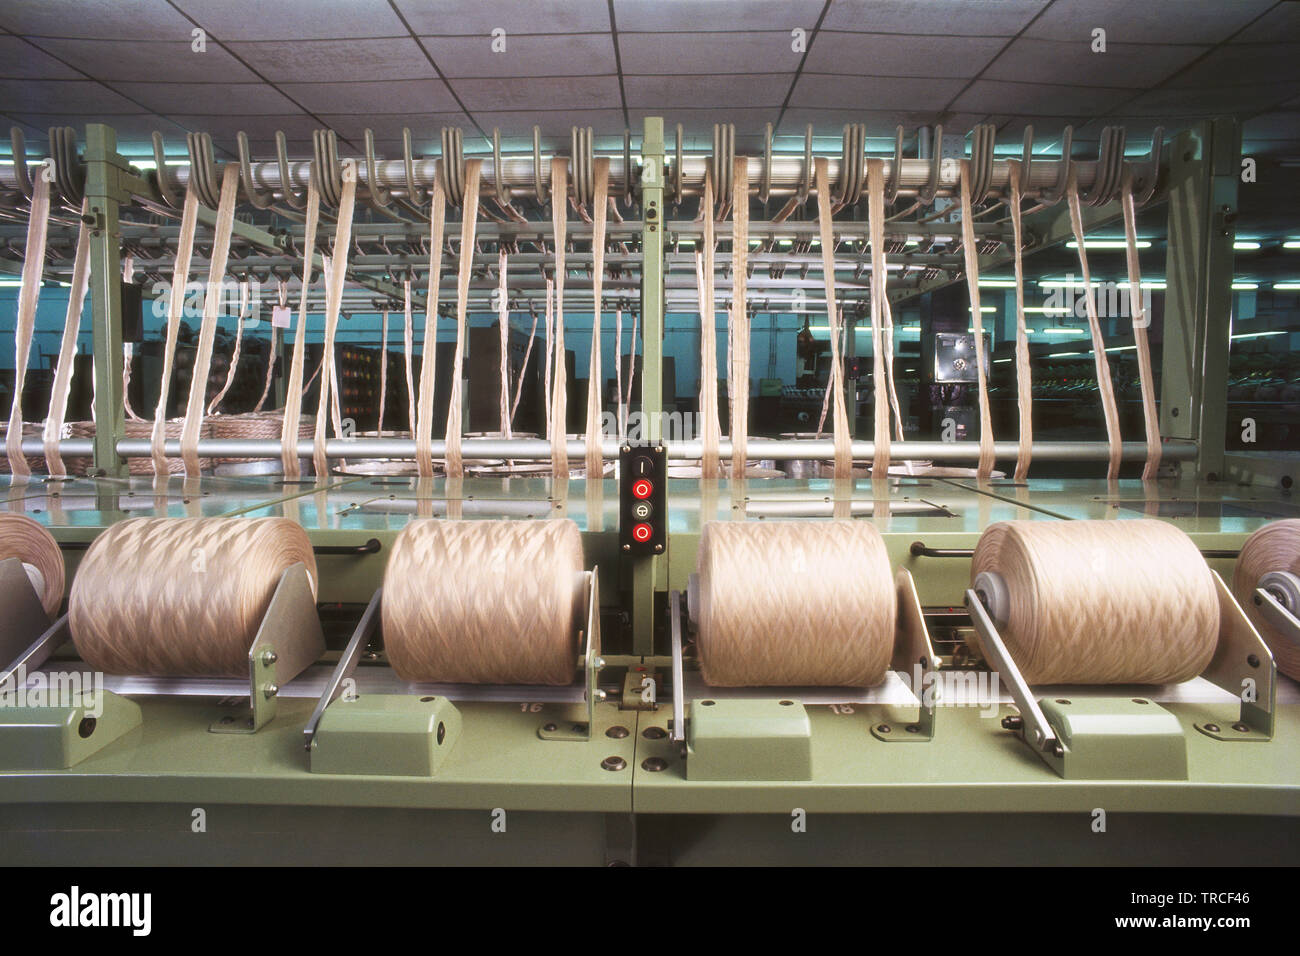 TEXTILE WEAVING MACHINE IN A TEXTILE MILL, INDIA - Stock Image